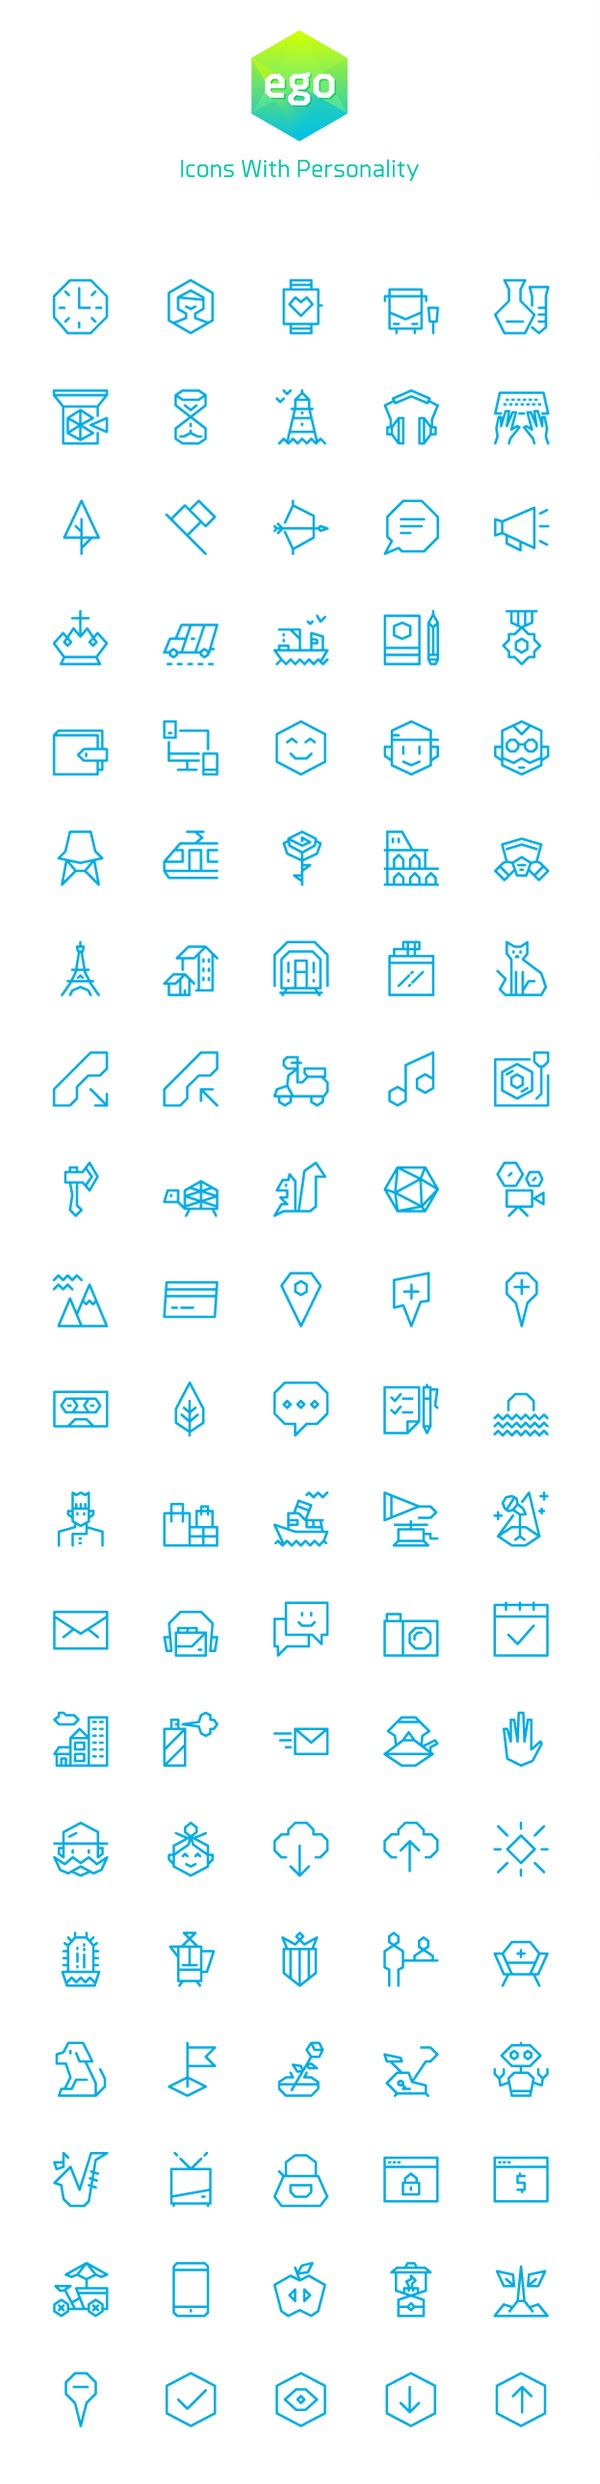 Free Ego Icons – 100 Vector Icons